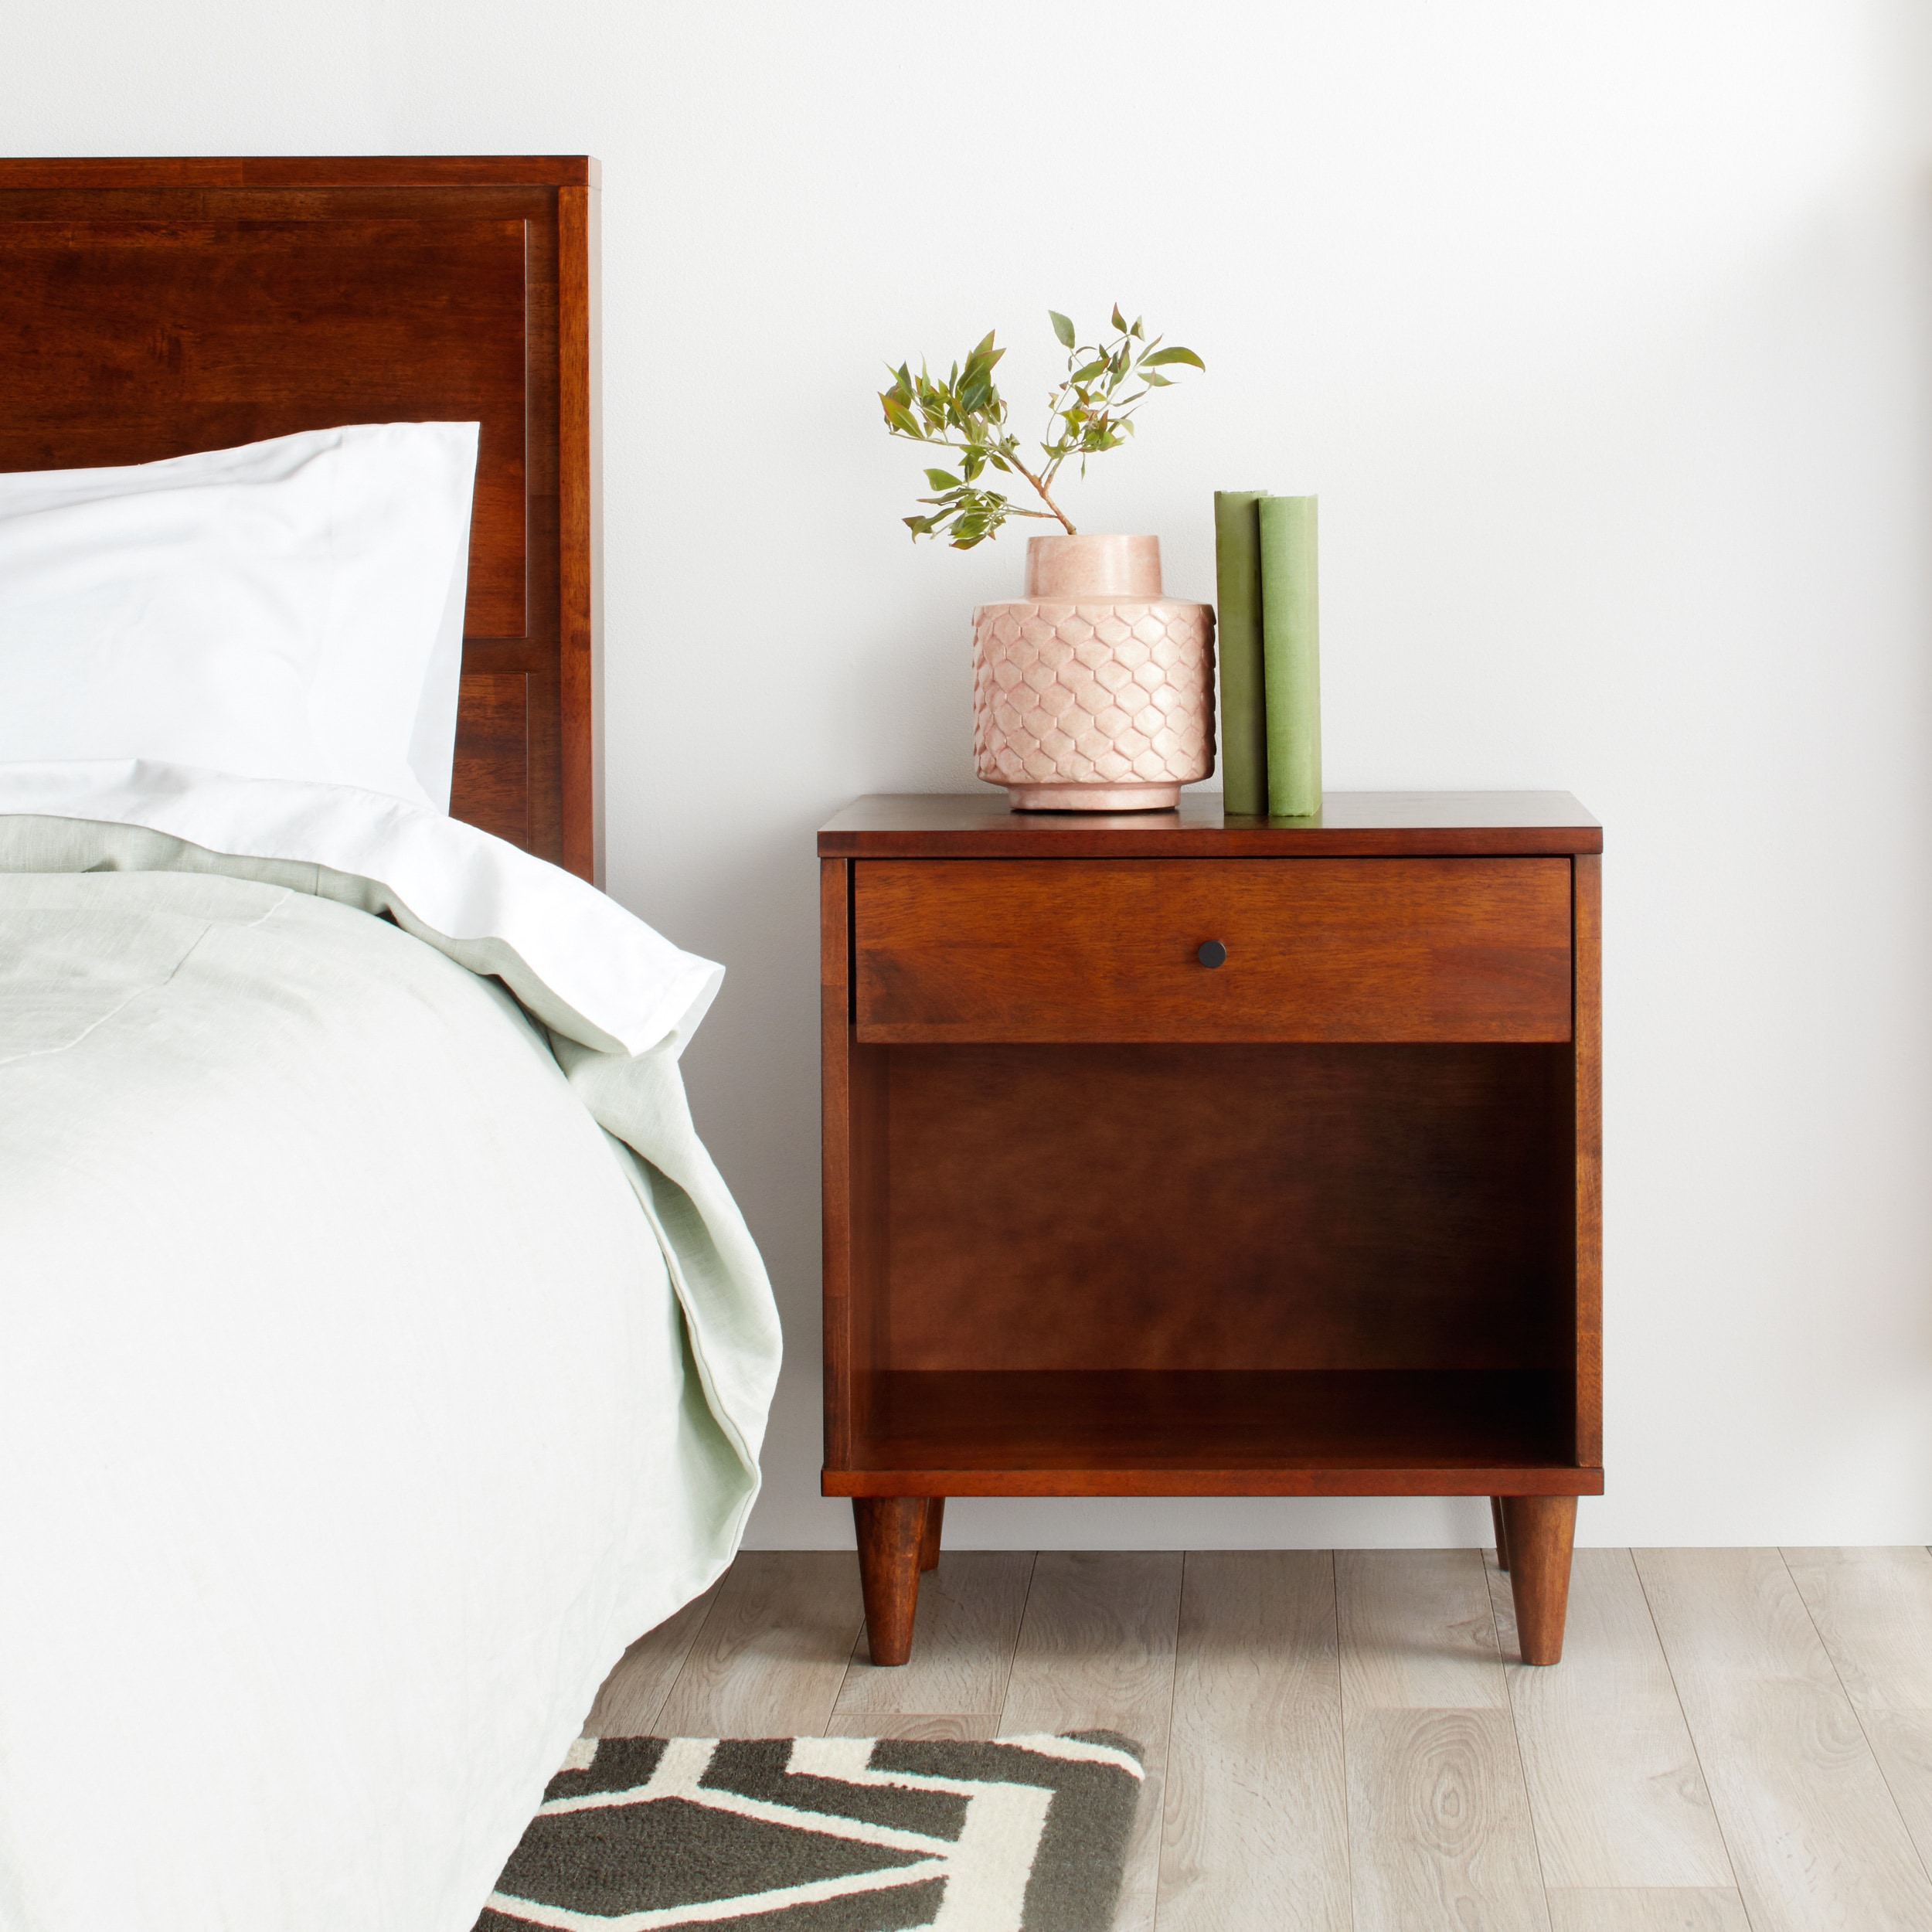 Extra 15% Off,Select Furniture*